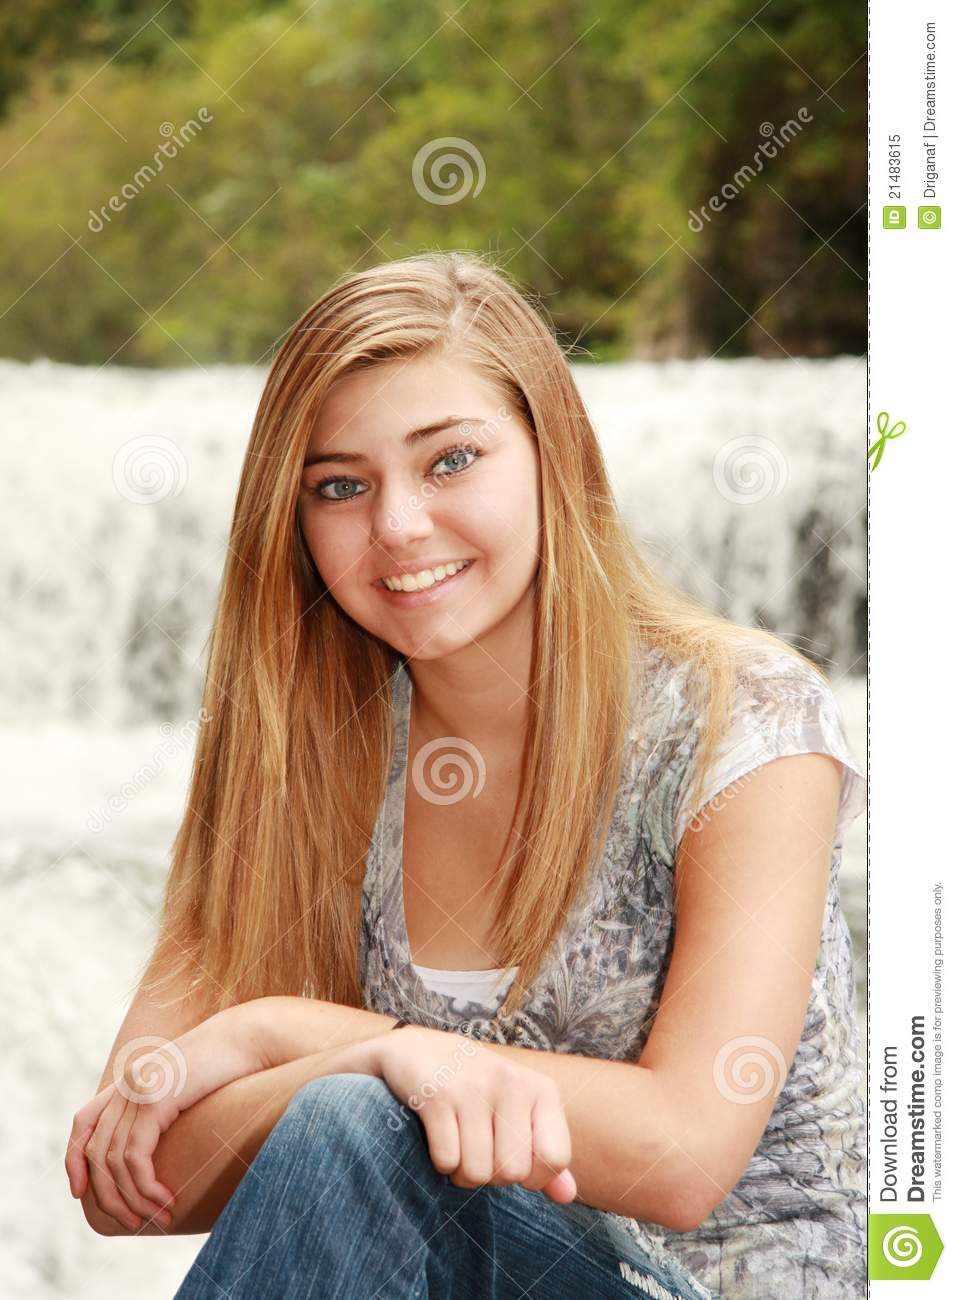 Outdoor Portrait Of A Pretty Blonde Girl Stock Image